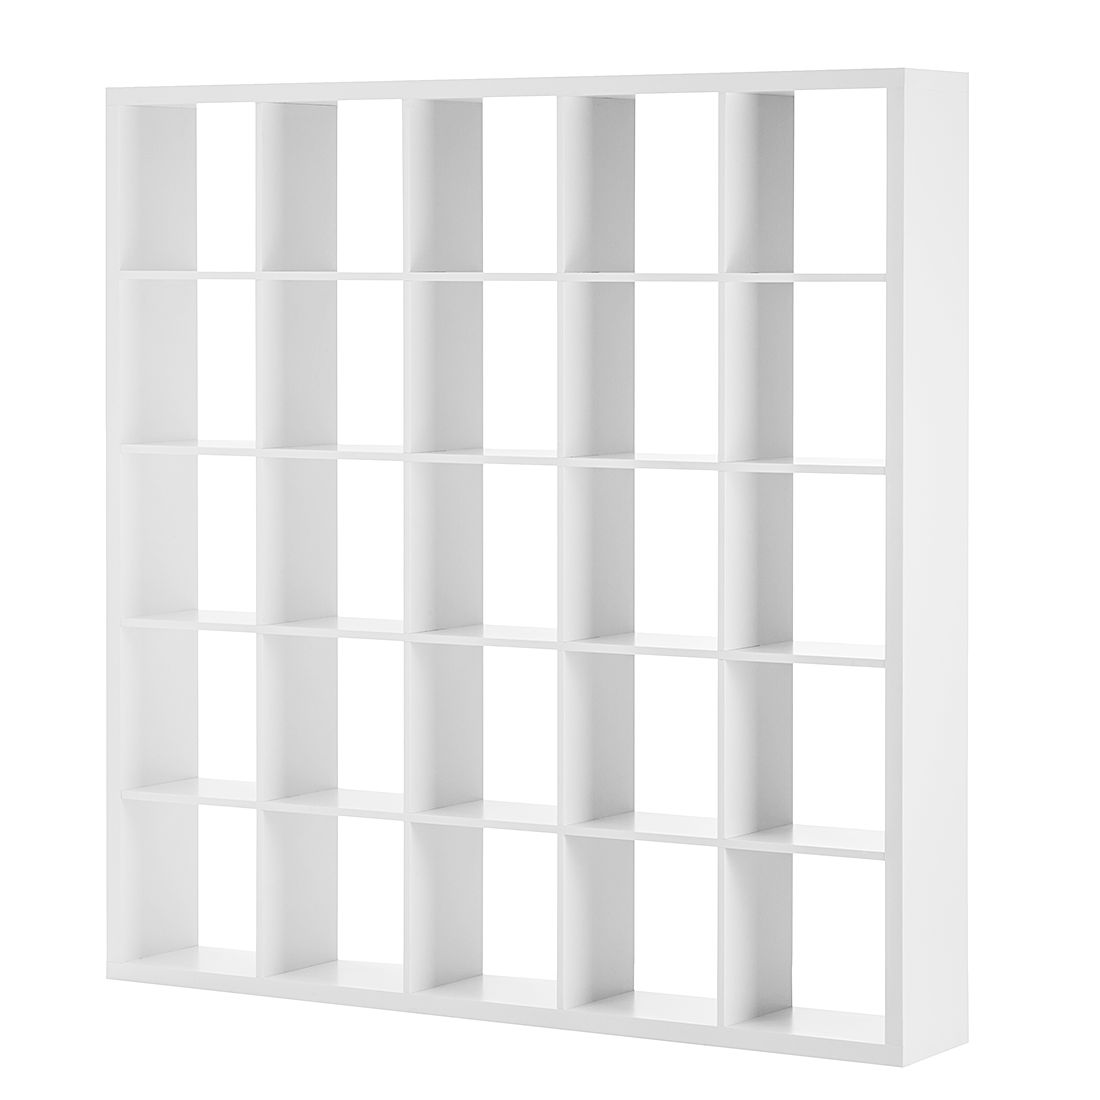 Home 24 - Etagère shelfy - blanc - 25 rangements, roomscape